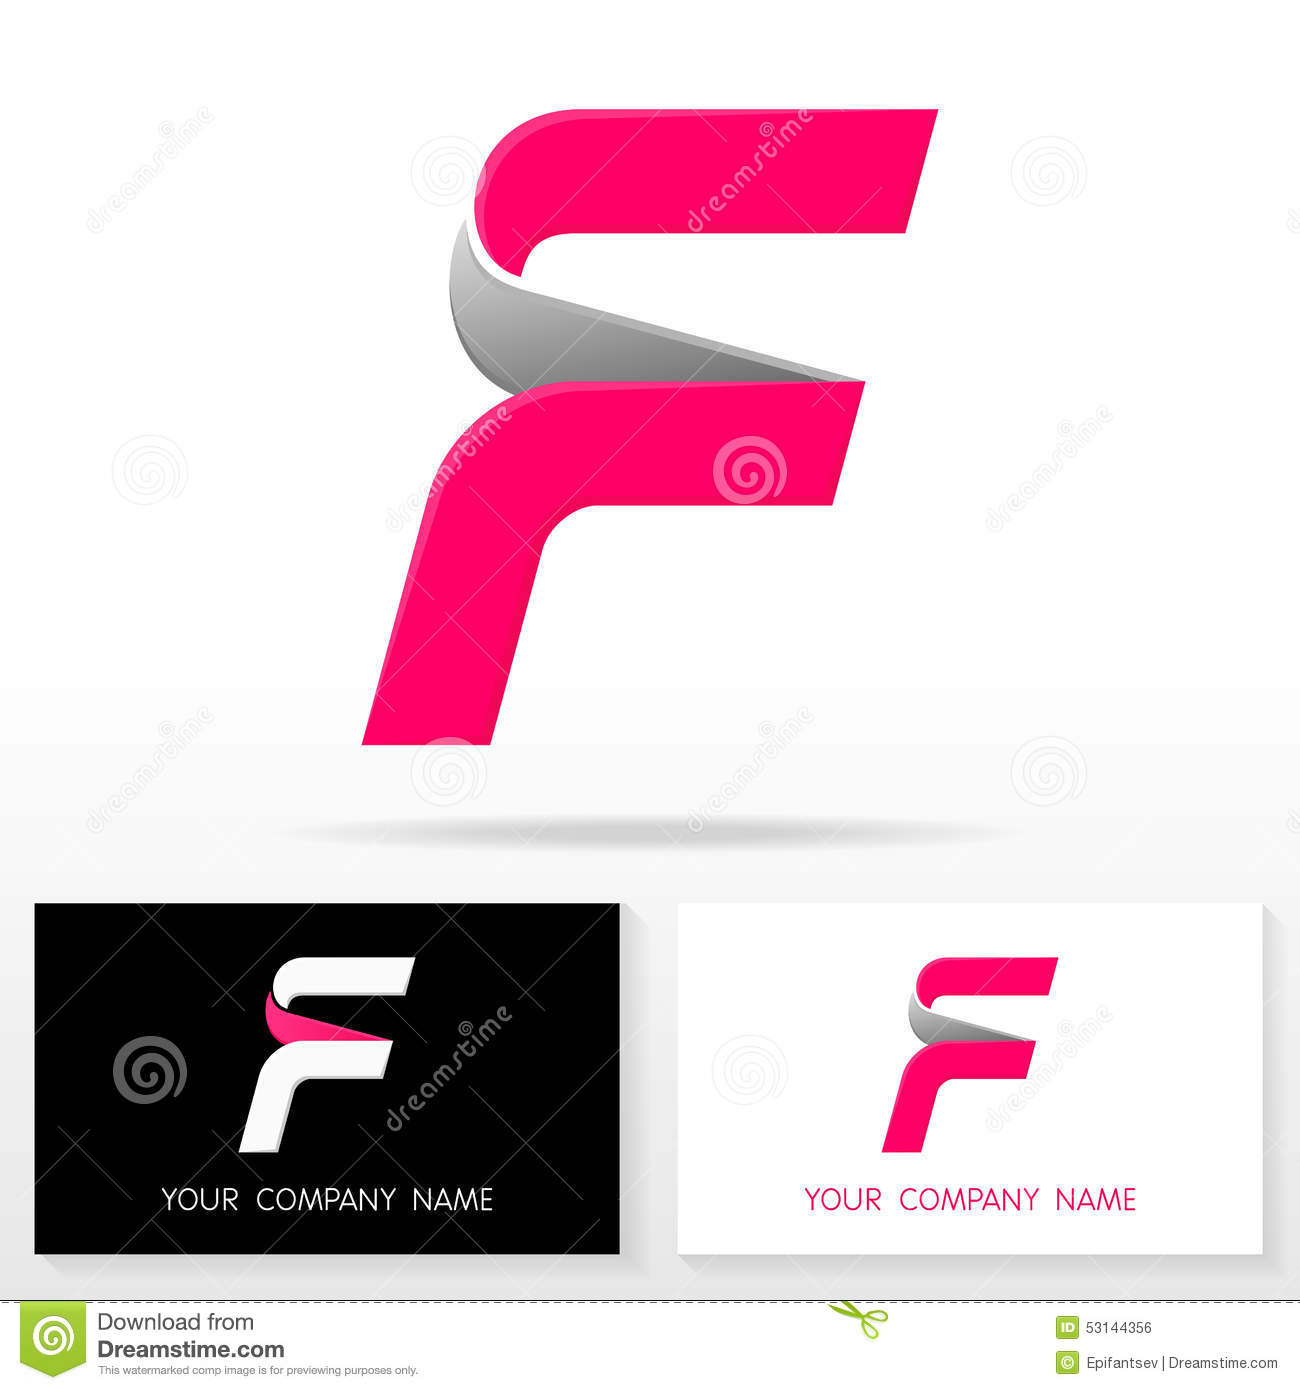 More similar stock images of ` Letter F logo icon design template ...